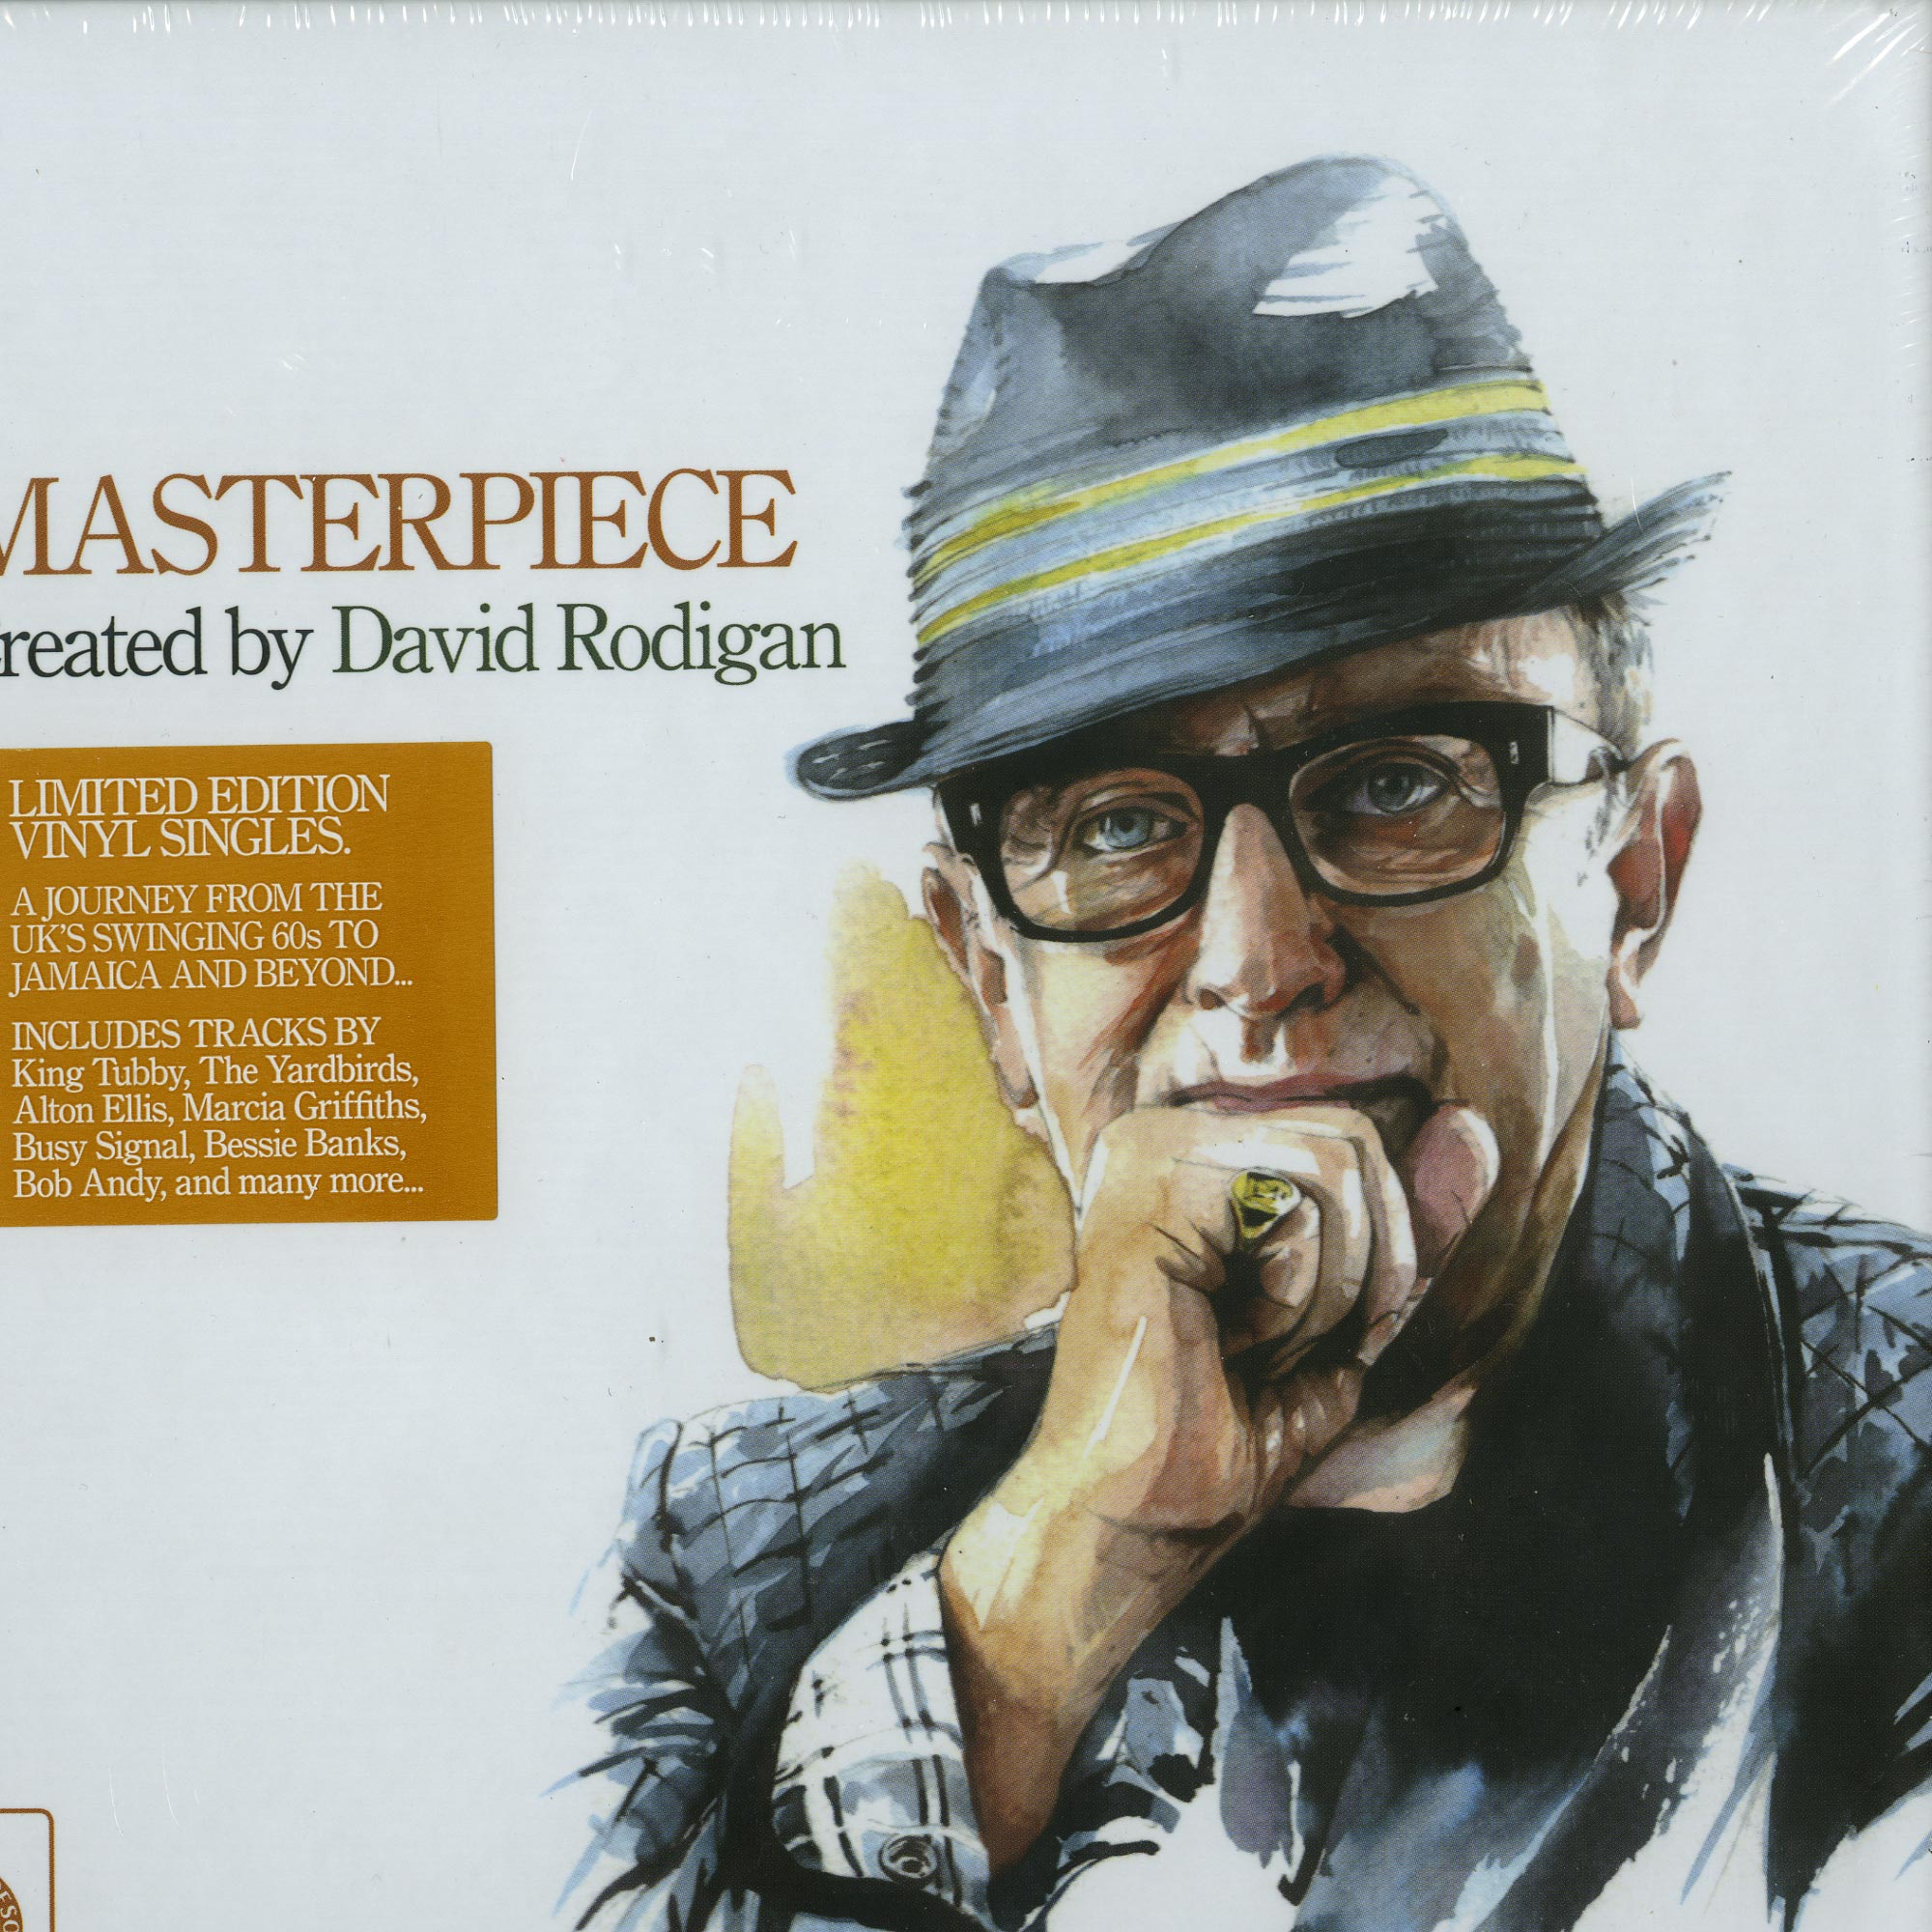 Various Artists / David Rodigan - MASTERPIECE: CREATED BY DAVID RODIGAN